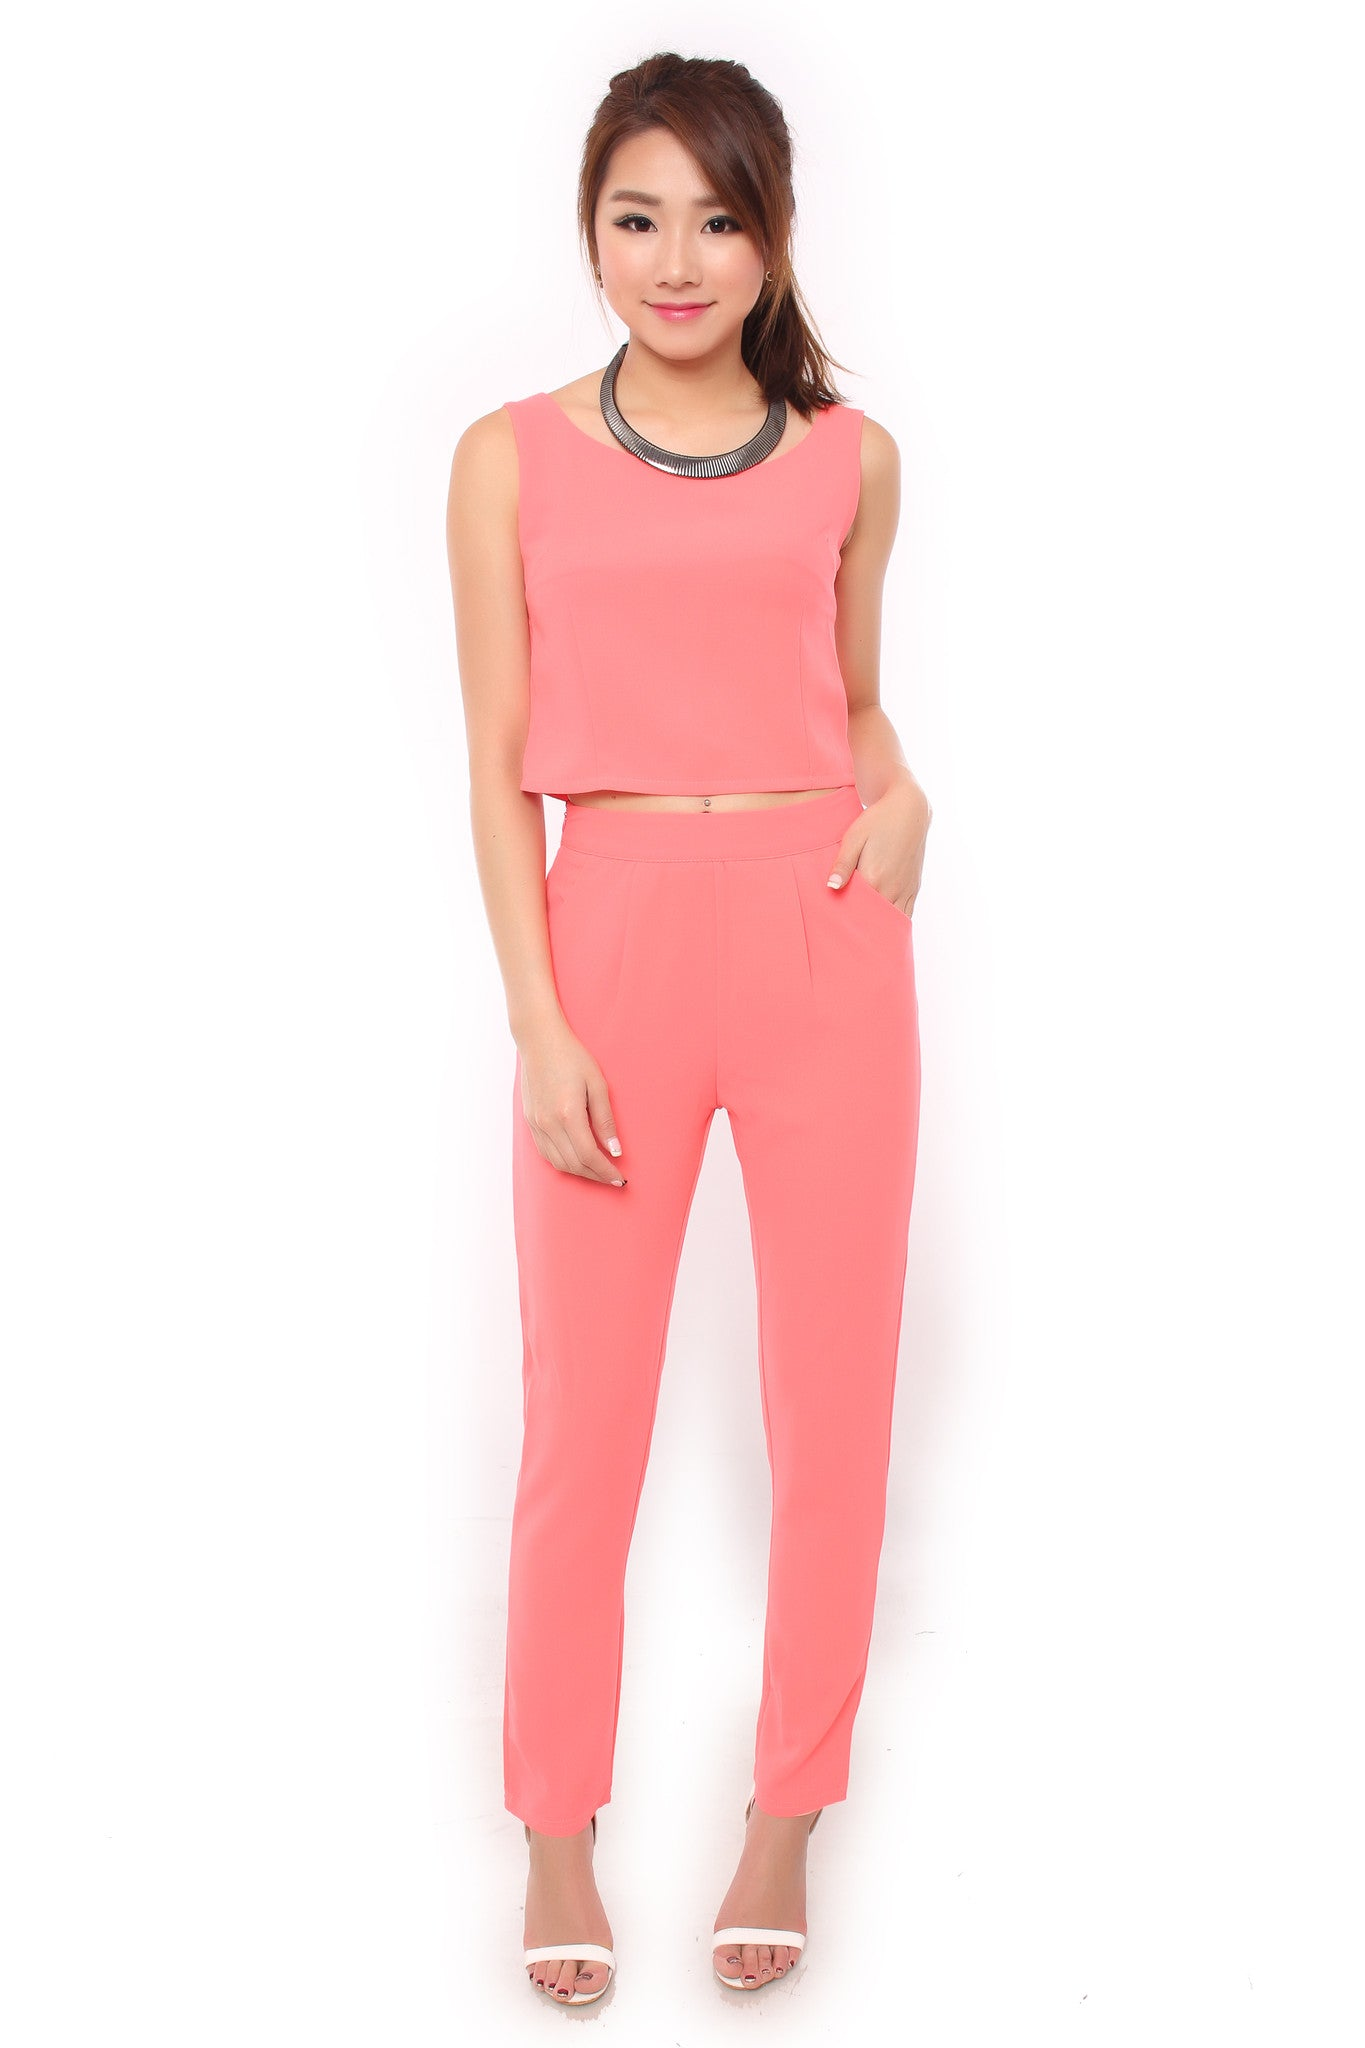 HOLLY TWO-PIECE SET IN BLUSH